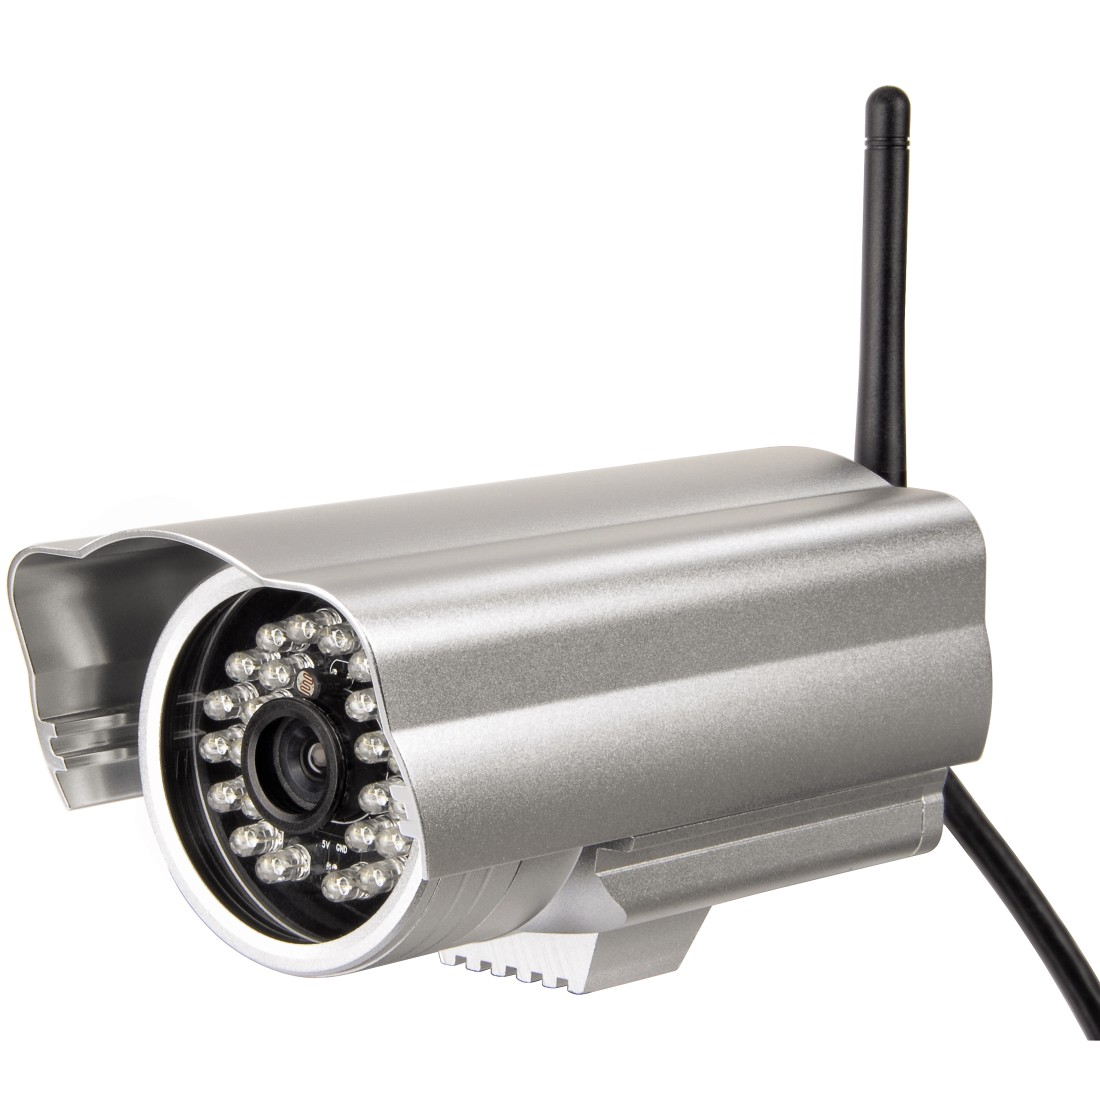 HAMA 54 Mbps WLAN IP Camera Windows 7 64-BIT